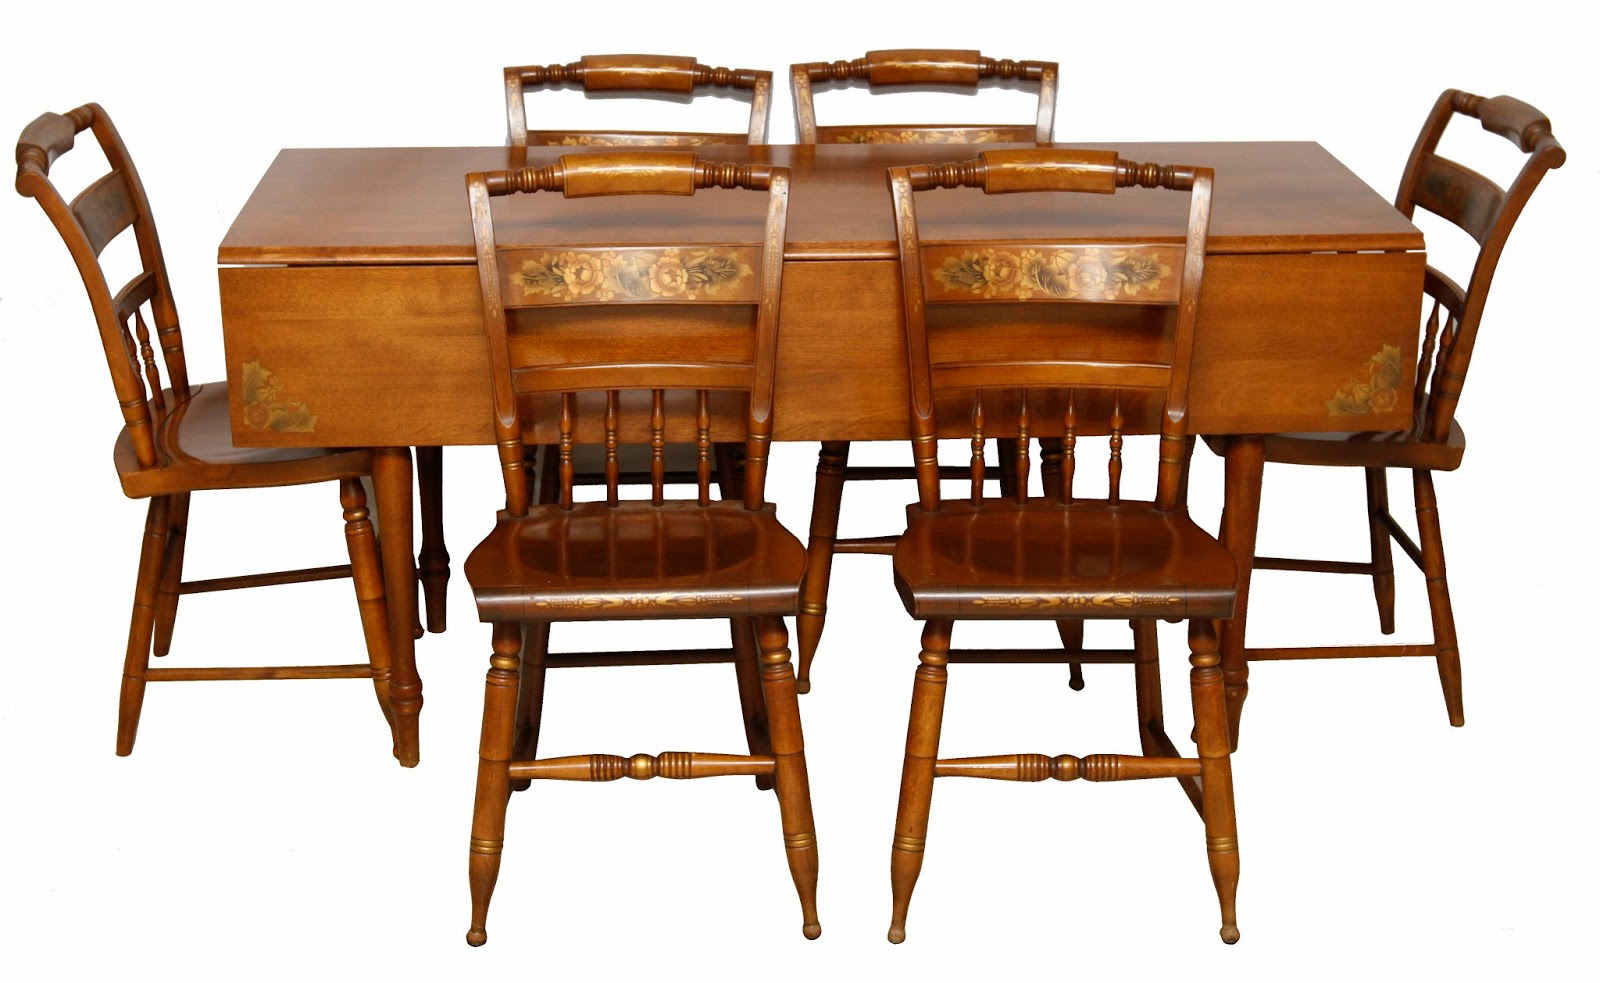 Hitchcock Desk And Chair Buy Covers Ireland 1950 Dining Table Six Chairs Grandma 39s